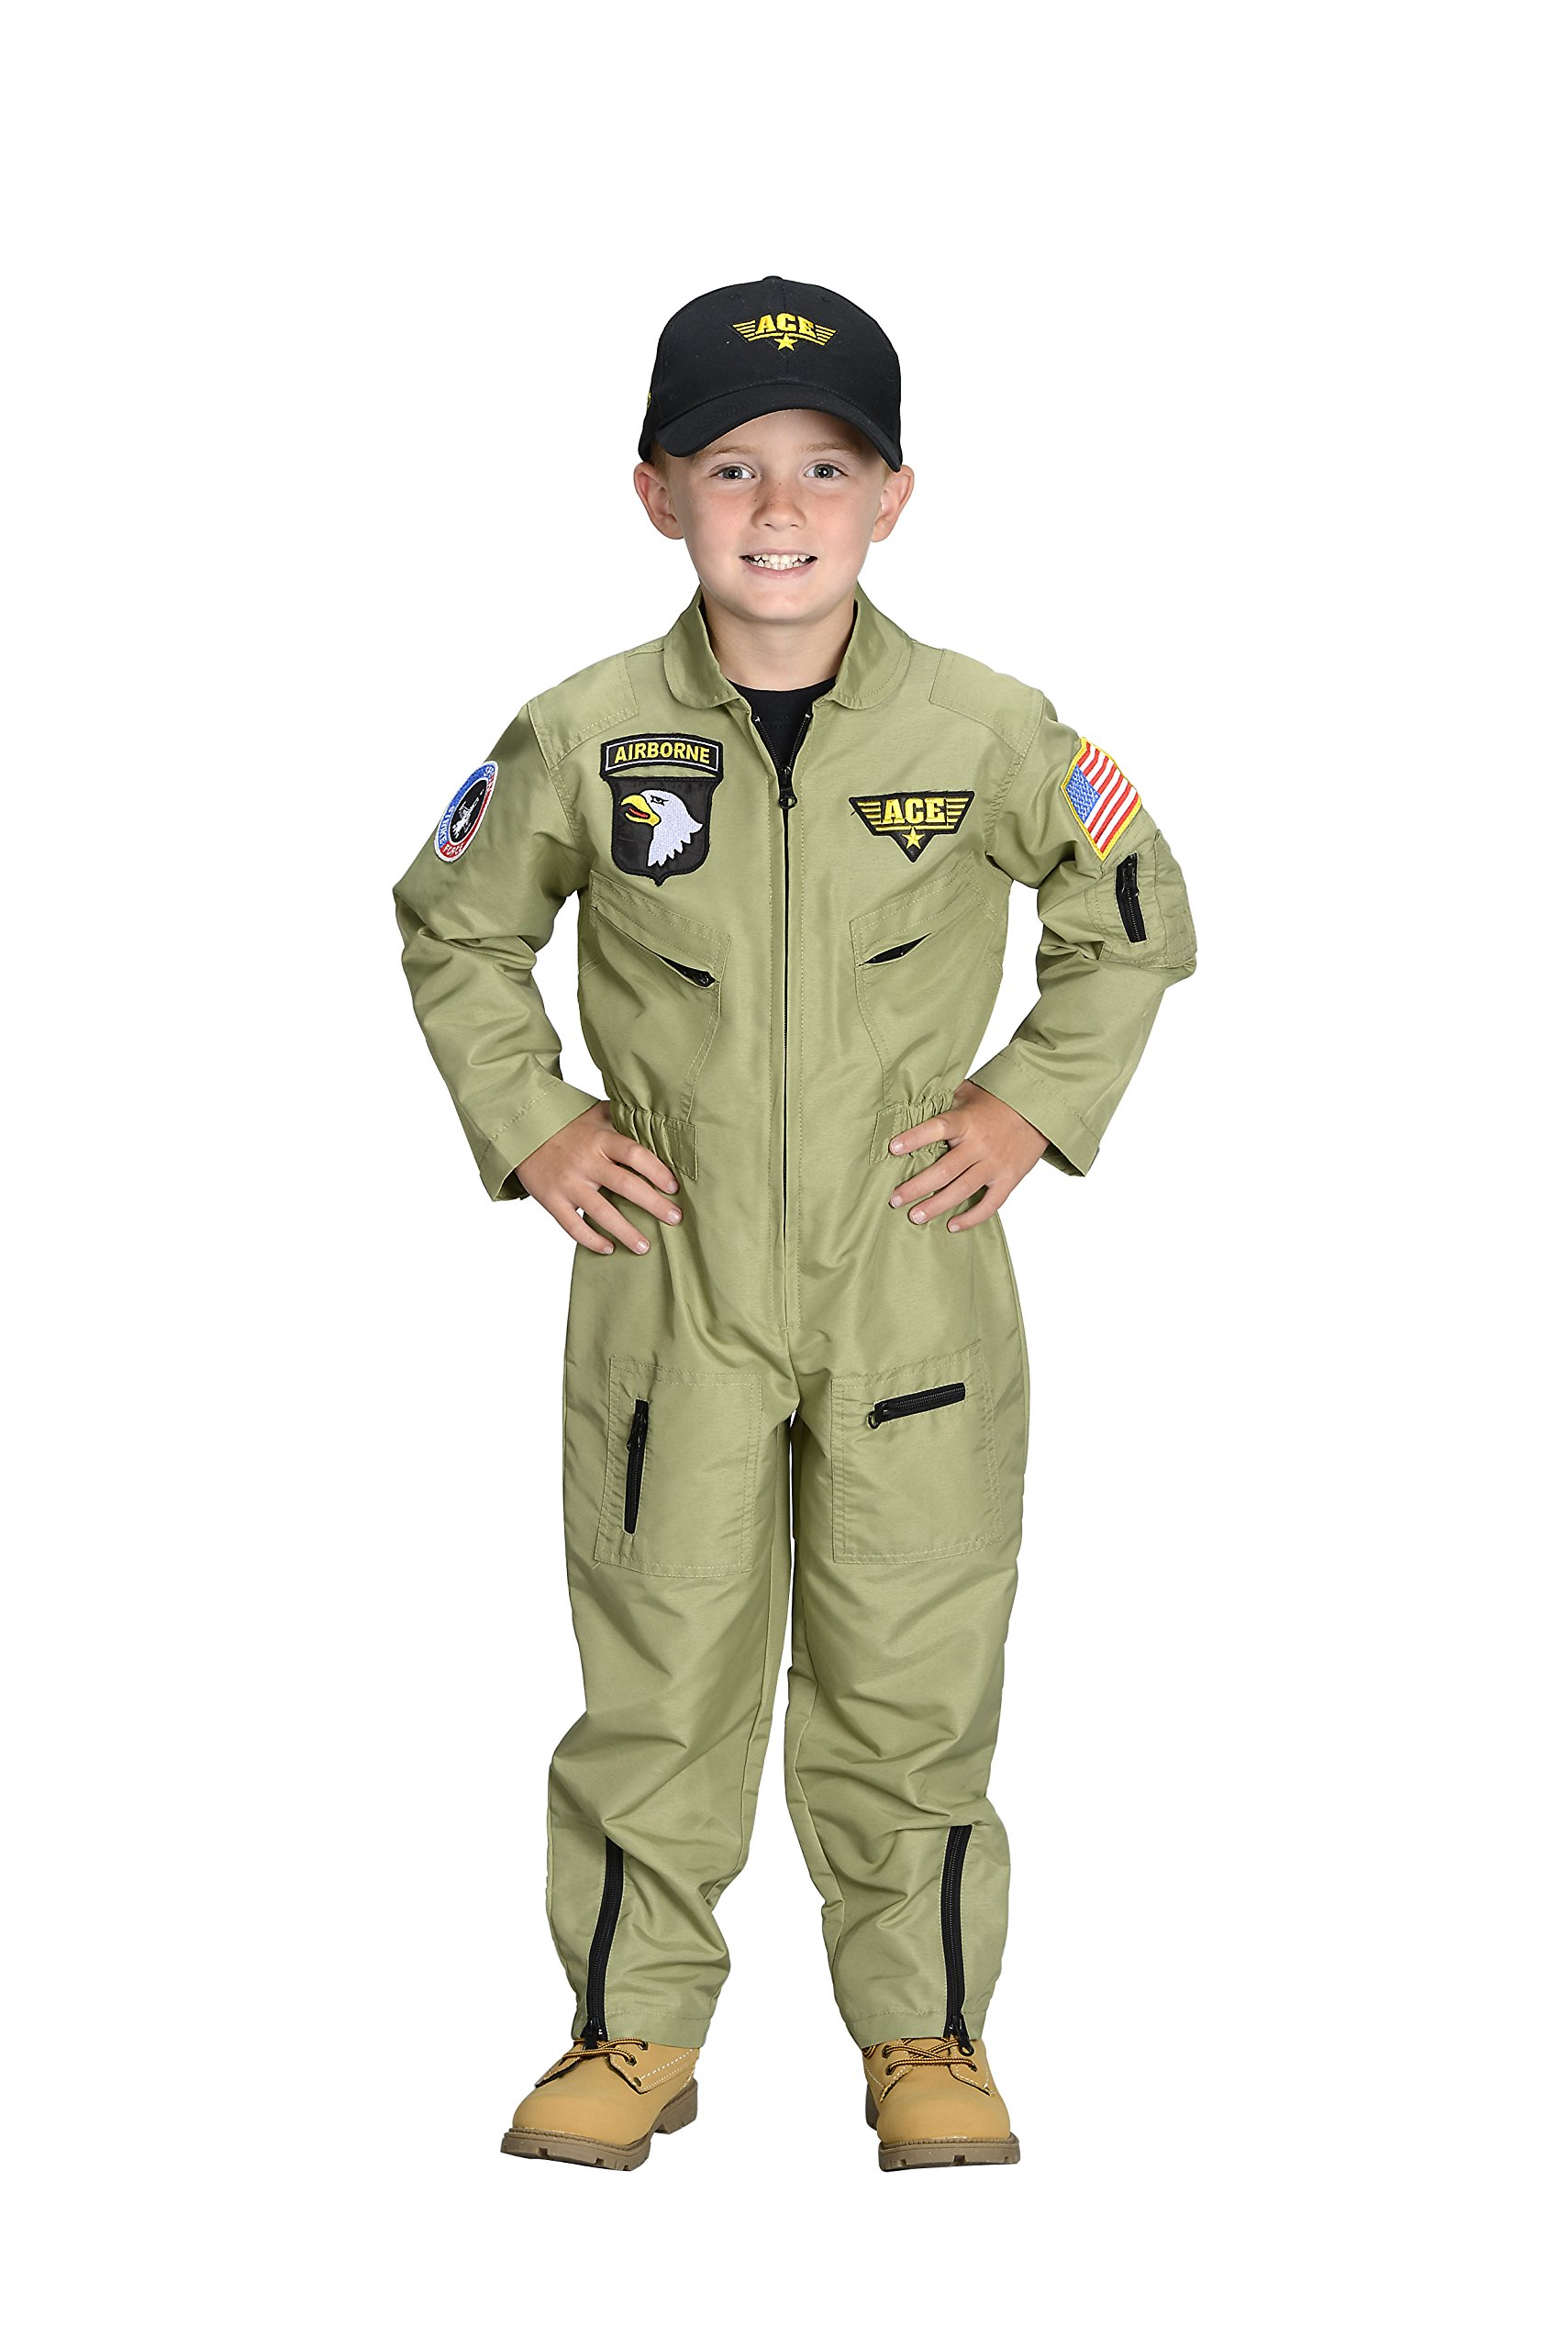 Aeromax Jr. Fighter Pilot Suit with Embroidered Cap, Size 6/8. by Aeromax (Image #1)